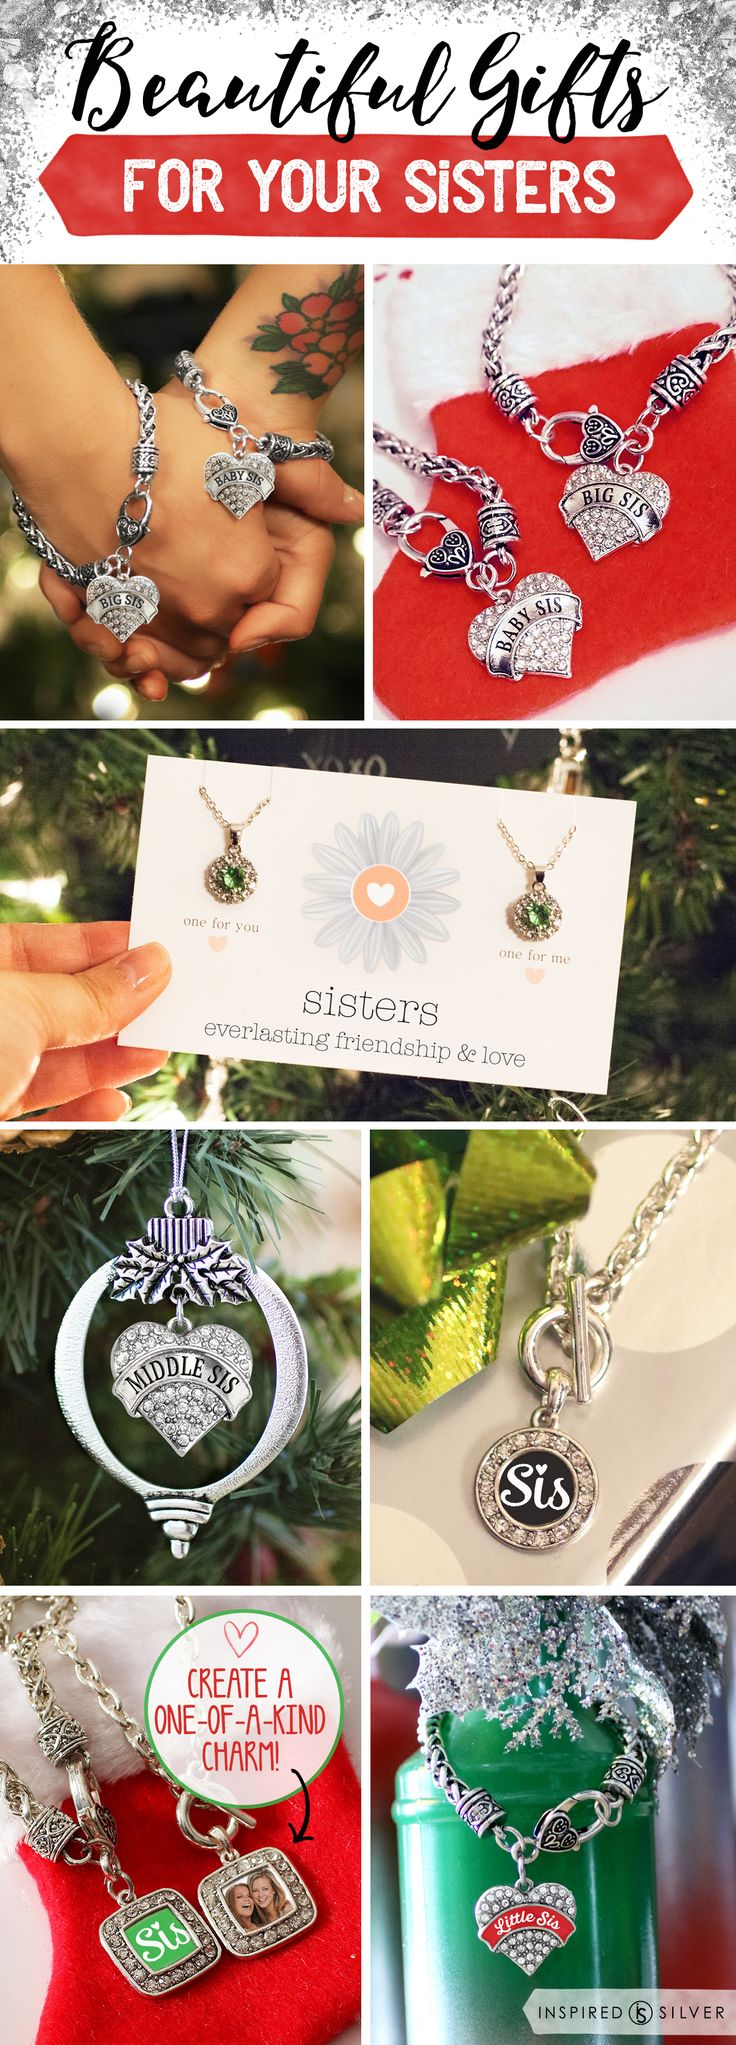 Do you love you sisters? Sisters share an unspoken bond throughout life.  only $10 each  #inspiredsilver now has matching sister bracelets for everyone in the family. Big Sis, Middle Sis, Little Sis, Baby sis and dont forget mom.